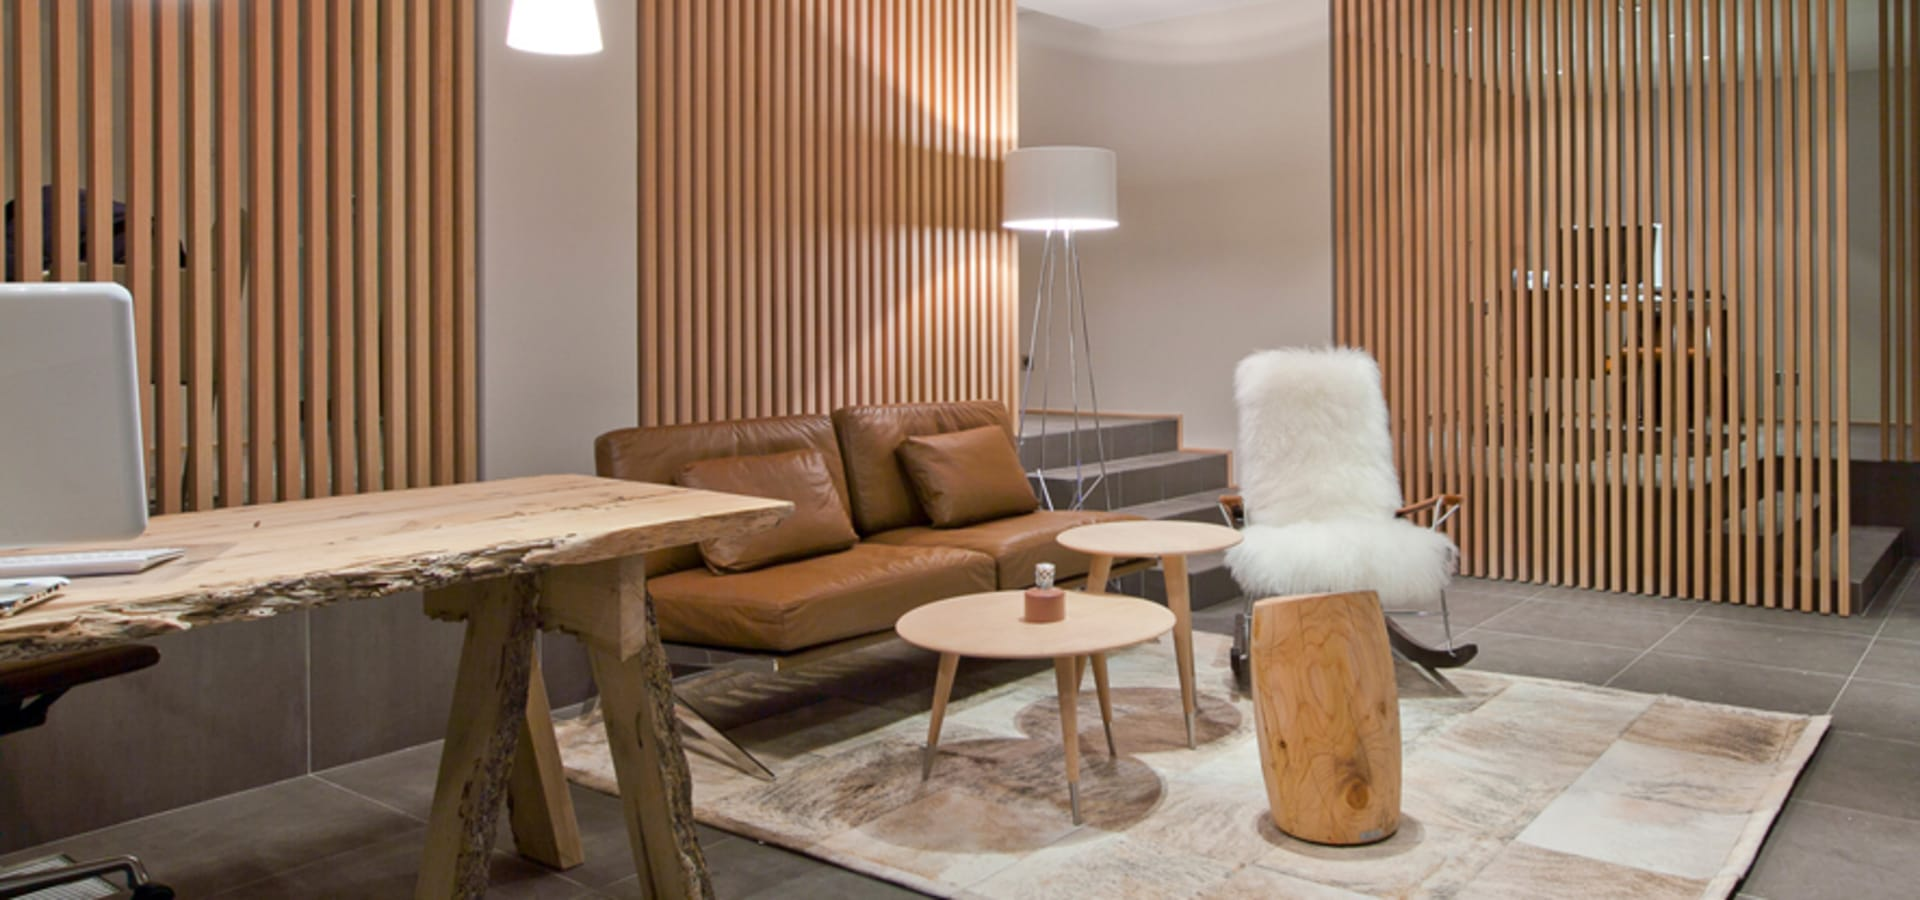 Agence Immobiliere Courchevel agence immobilière - courchevel - 2011leslie gauthier | homify